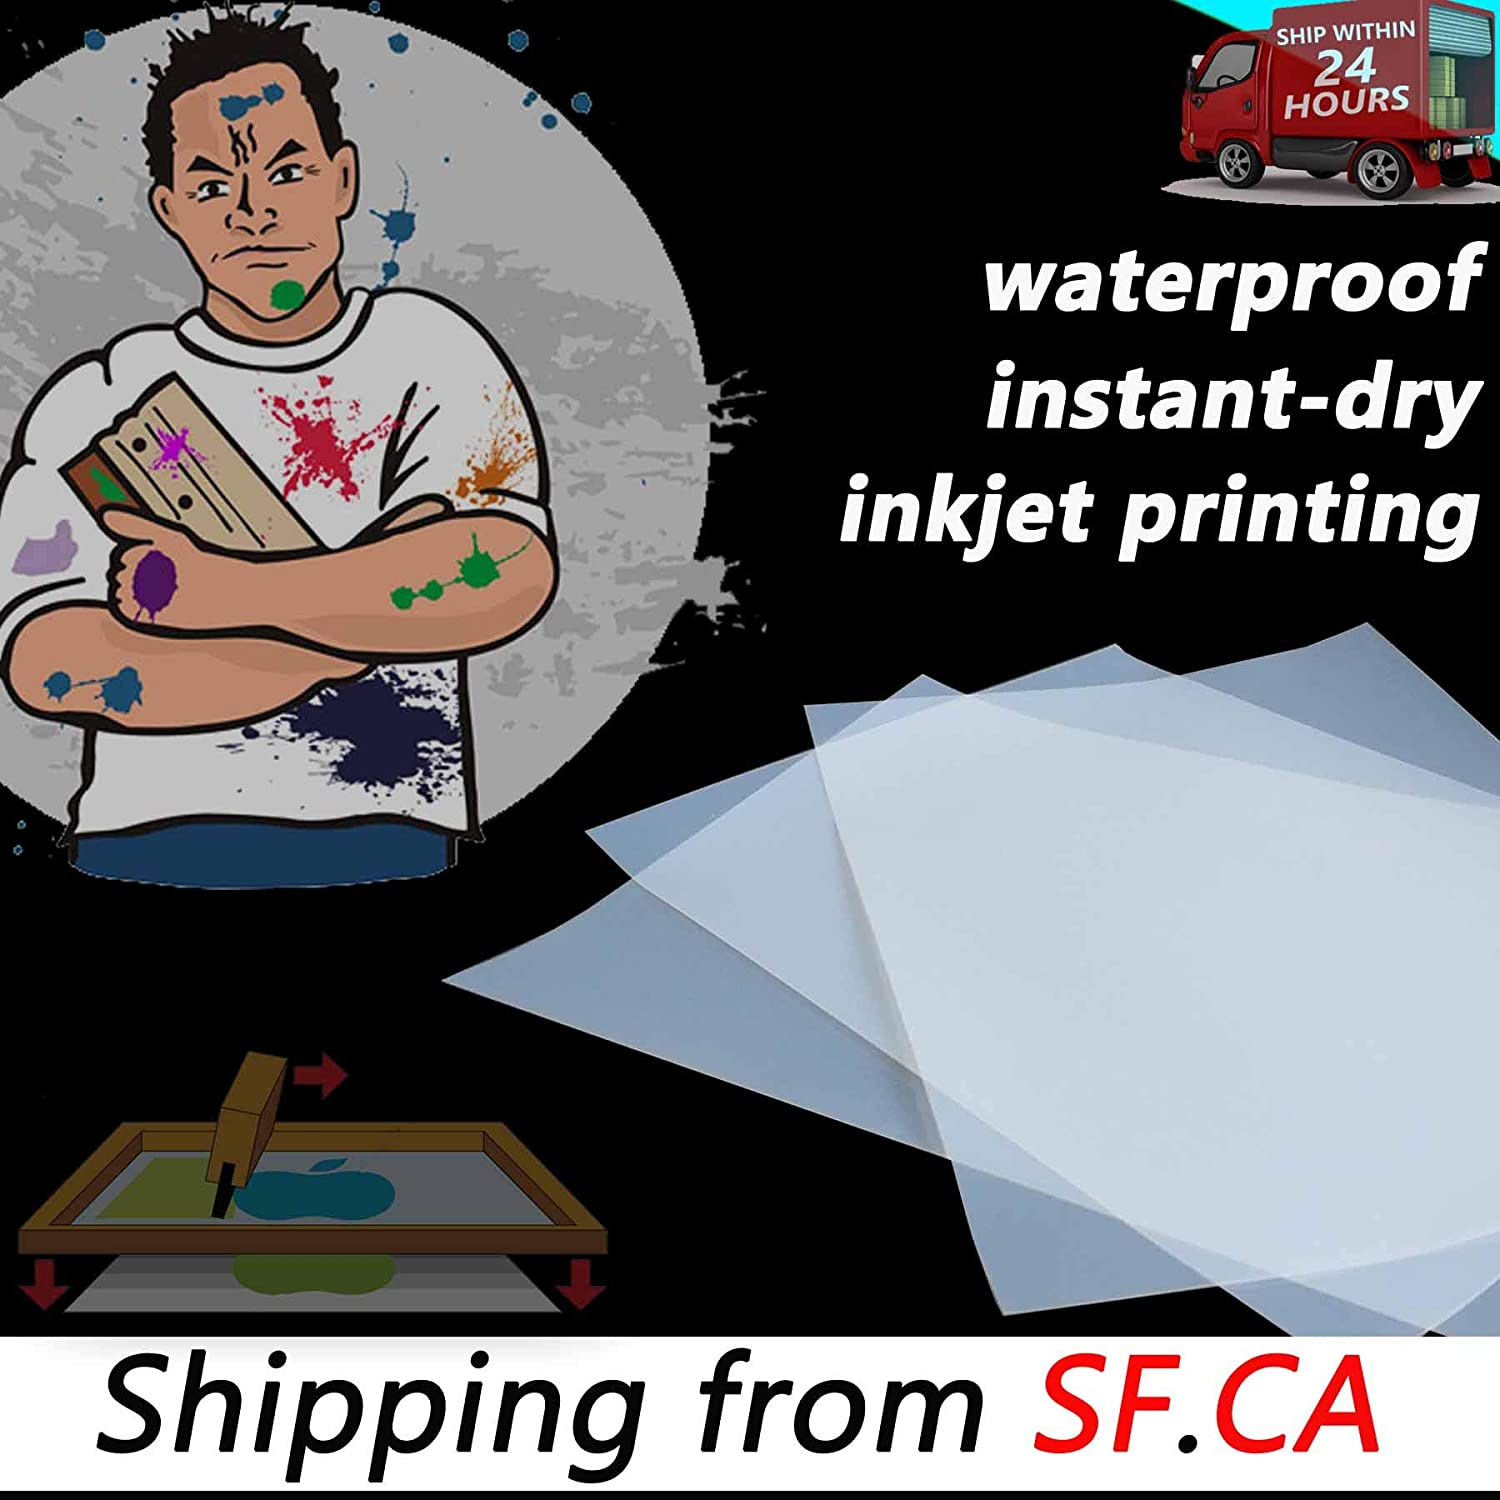 Premium Waterproof Inkjet Instant-Dry Milk-Transparency Positive Silk Screen Printing Film,Great for EPSON,HP,Canon Water-Based Dye and Pigment Inks Printers 44x100//roll